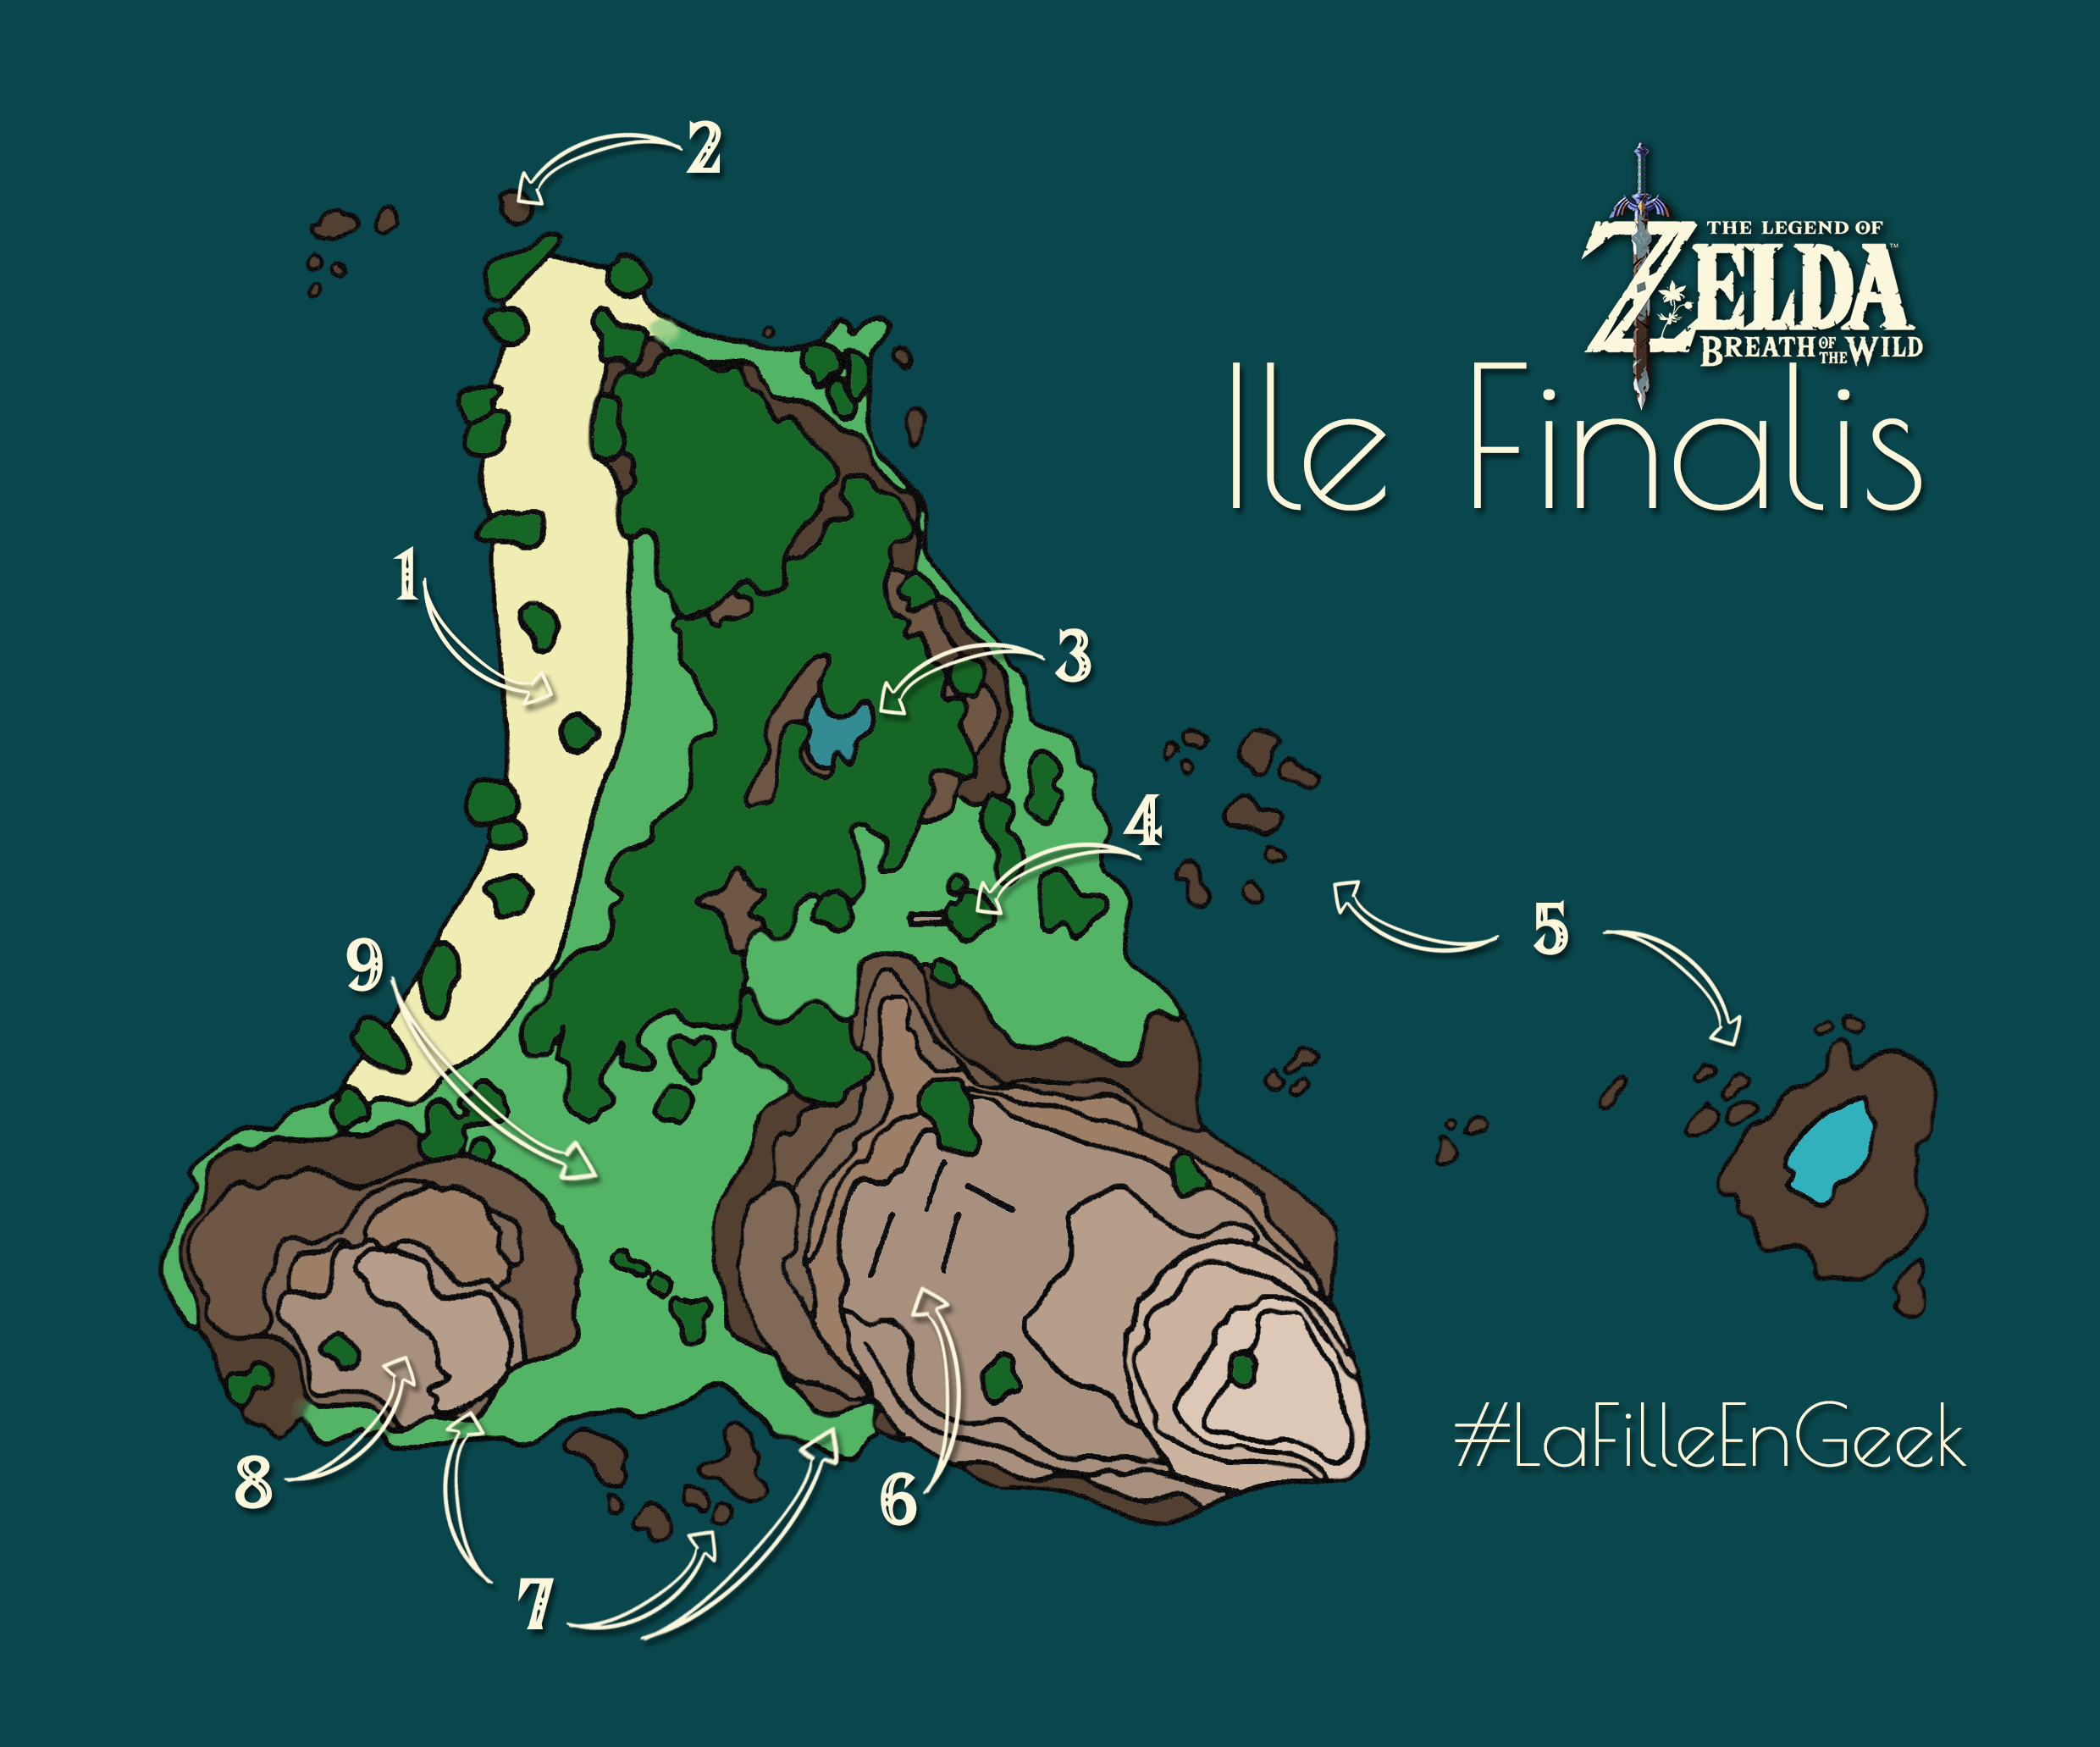 Carte Ile Finalis Zelda Breath of the Wild Fille Geek